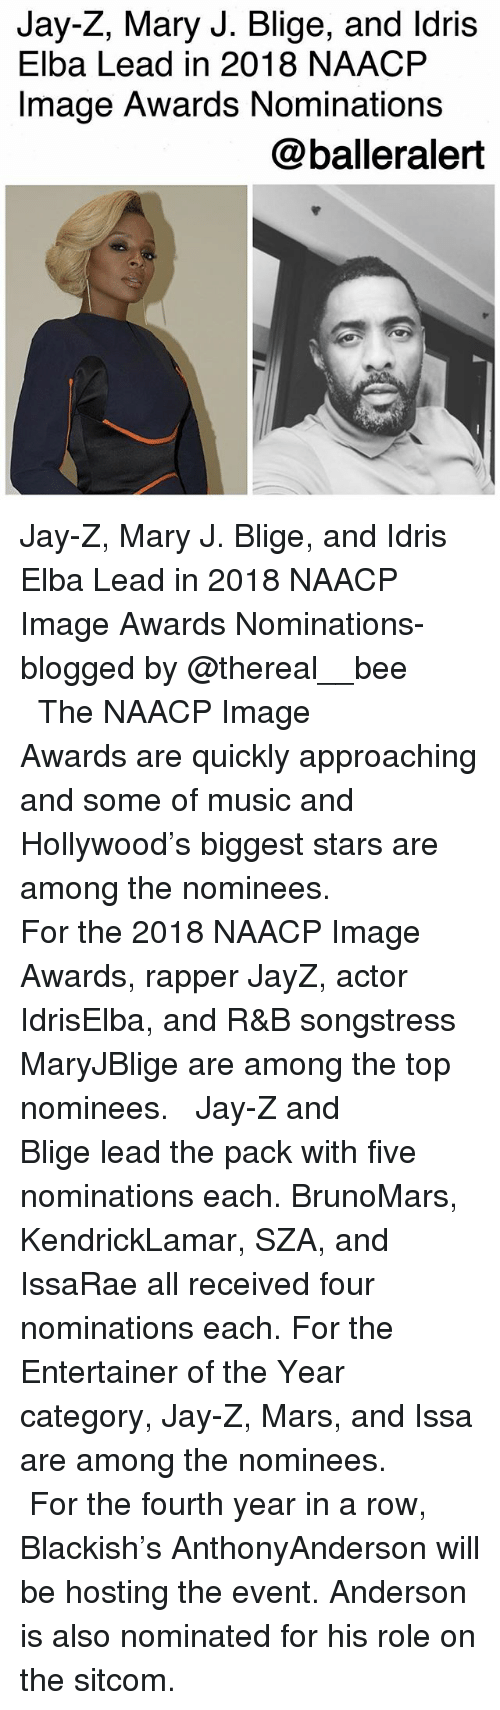 mary j: Jay-Z, Mary J. Blige, and ldris  Elba Lead in 2018 NAACP  Image Awards Nominations  @balleralert Jay-Z, Mary J. Blige, and Idris Elba Lead in 2018 NAACP Image Awards Nominations-blogged by @thereal__bee ⠀⠀⠀⠀⠀⠀⠀⠀⠀ ⠀⠀ The NAACP Image Awards are quickly approaching and some of music and Hollywood's biggest stars are among the nominees. ⠀⠀⠀⠀⠀⠀⠀⠀⠀ ⠀⠀ For the 2018 NAACP Image Awards, rapper JayZ, actor IdrisElba, and R&B songstress MaryJBlige are among the top nominees. ⠀⠀⠀⠀⠀⠀⠀⠀⠀ ⠀⠀ Jay-Z and Blige lead the pack with five nominations each. BrunoMars, KendrickLamar, SZA, and IssaRae all received four nominations each. For the Entertainer of the Year category, Jay-Z, Mars, and Issa are among the nominees. ⠀⠀⠀⠀⠀⠀⠀⠀⠀ ⠀⠀ For the fourth year in a row, Blackish's AnthonyAnderson will be hosting the event. Anderson is also nominated for his role on the sitcom.